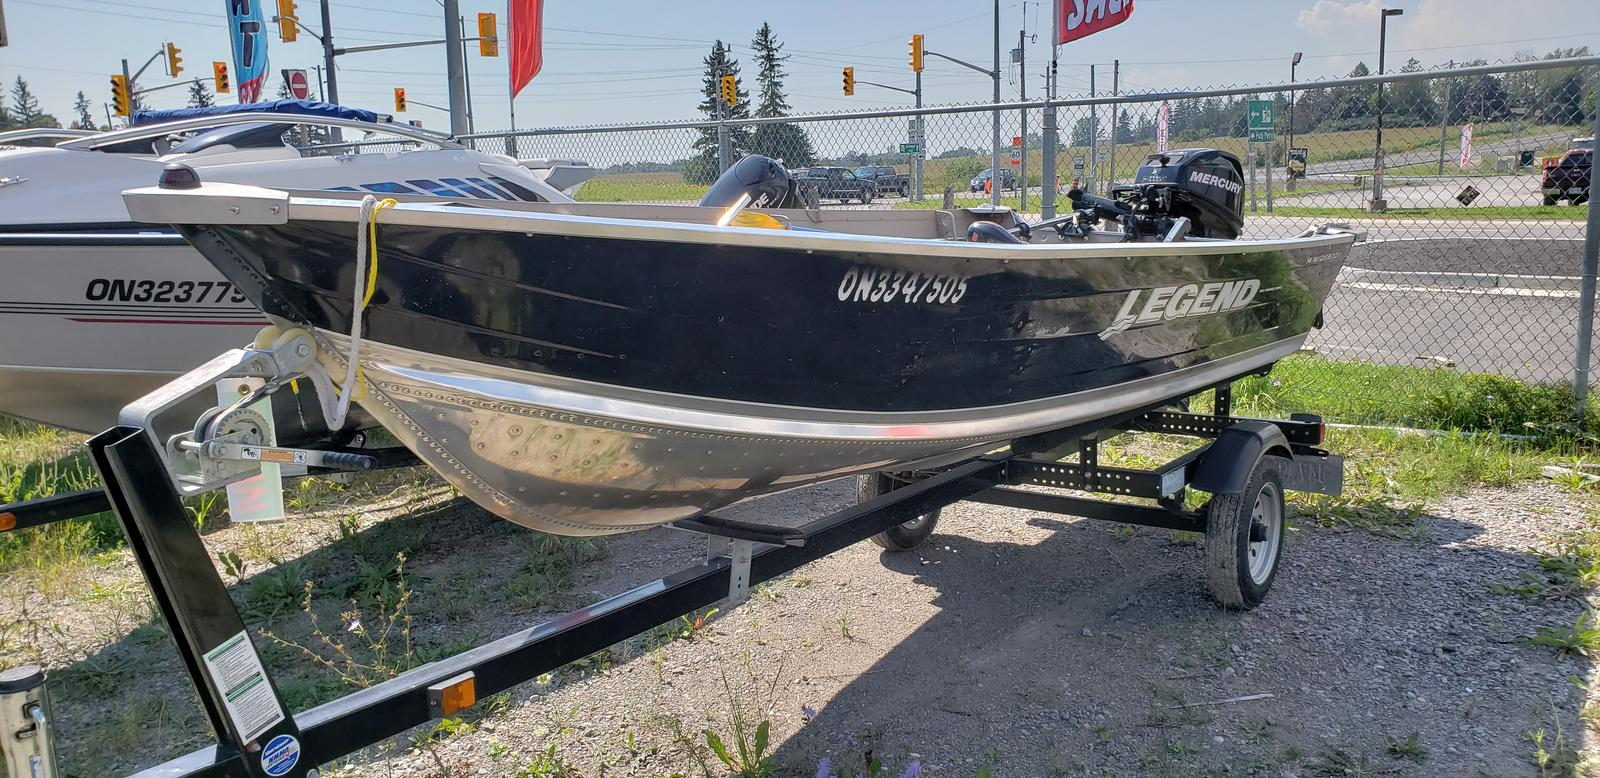 Inventory LakeView Marine Port Perry, ON 1-888-982-8947